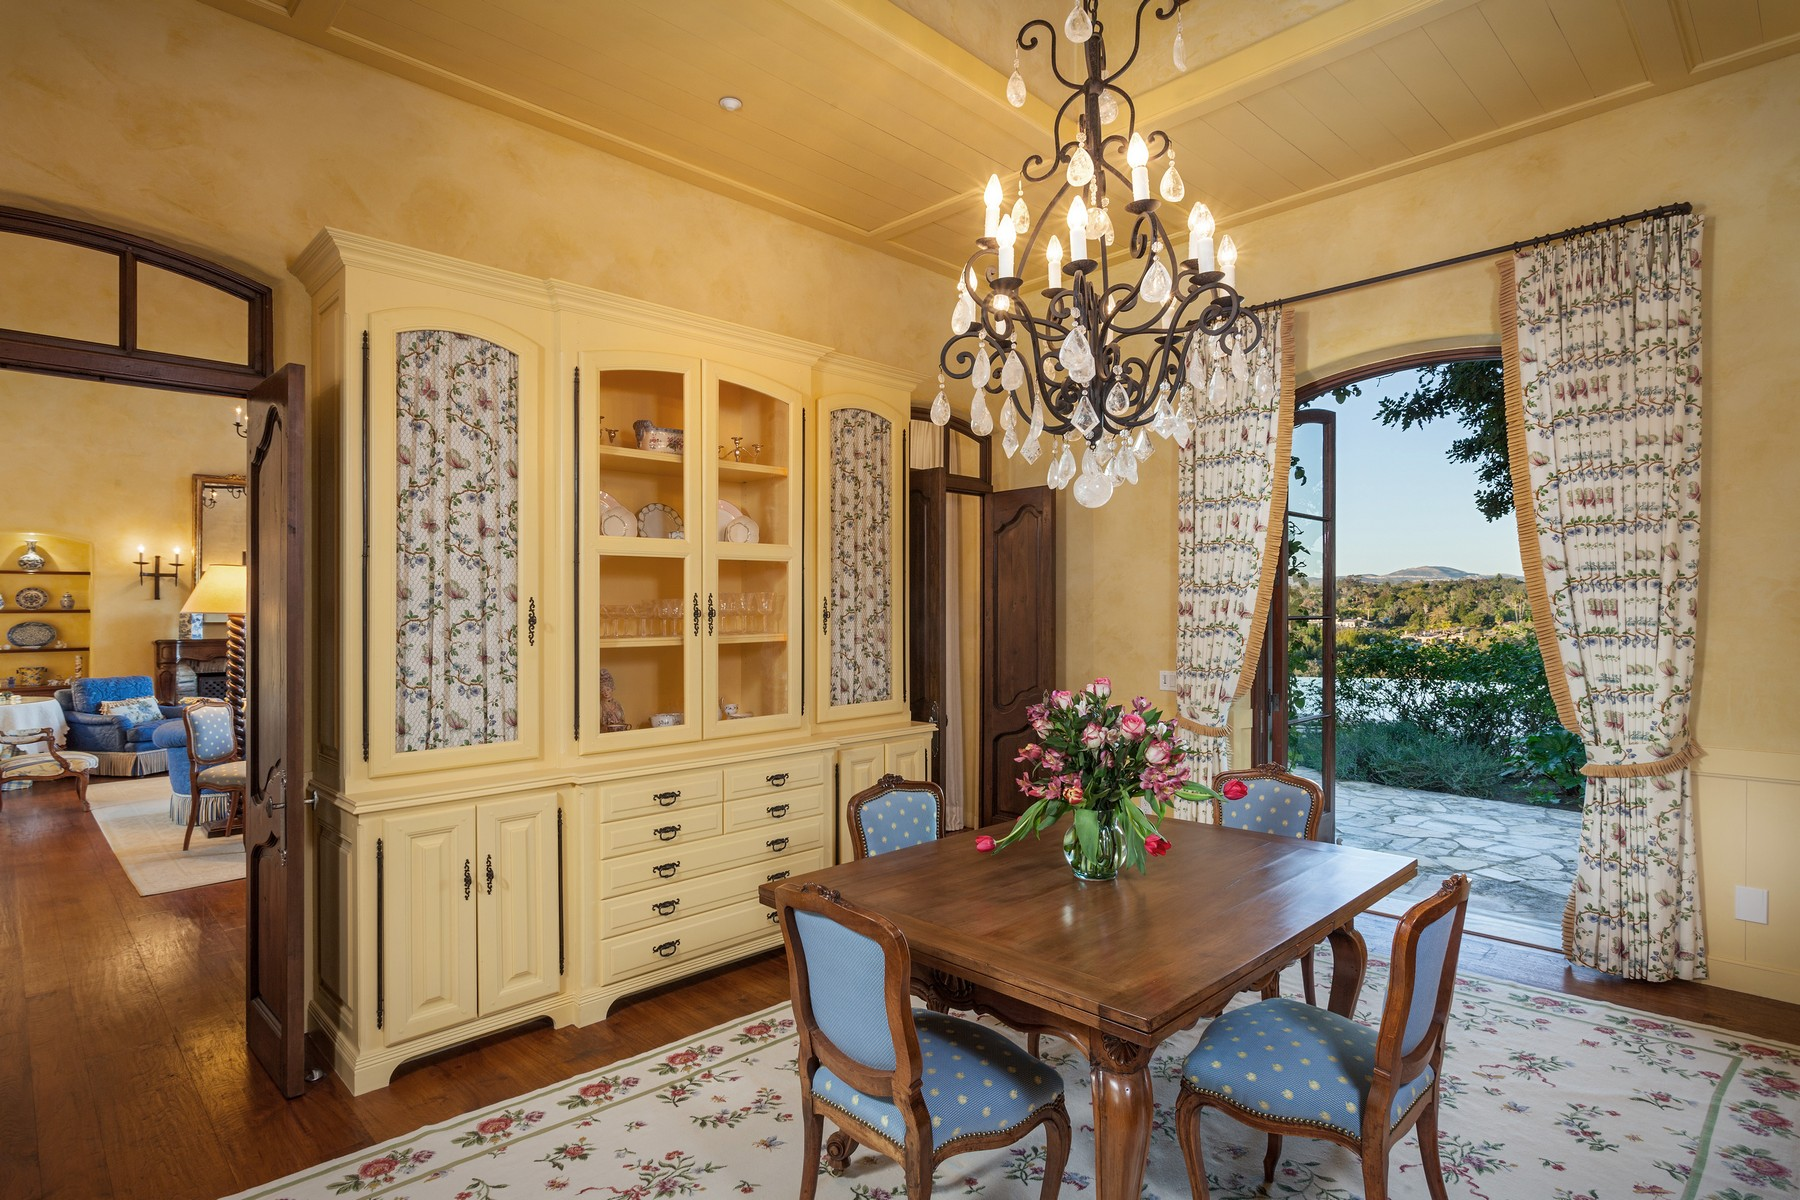 Additional photo for property listing at 5292 Avenida Maravillas  Rancho Santa Fe, California 92067 United States